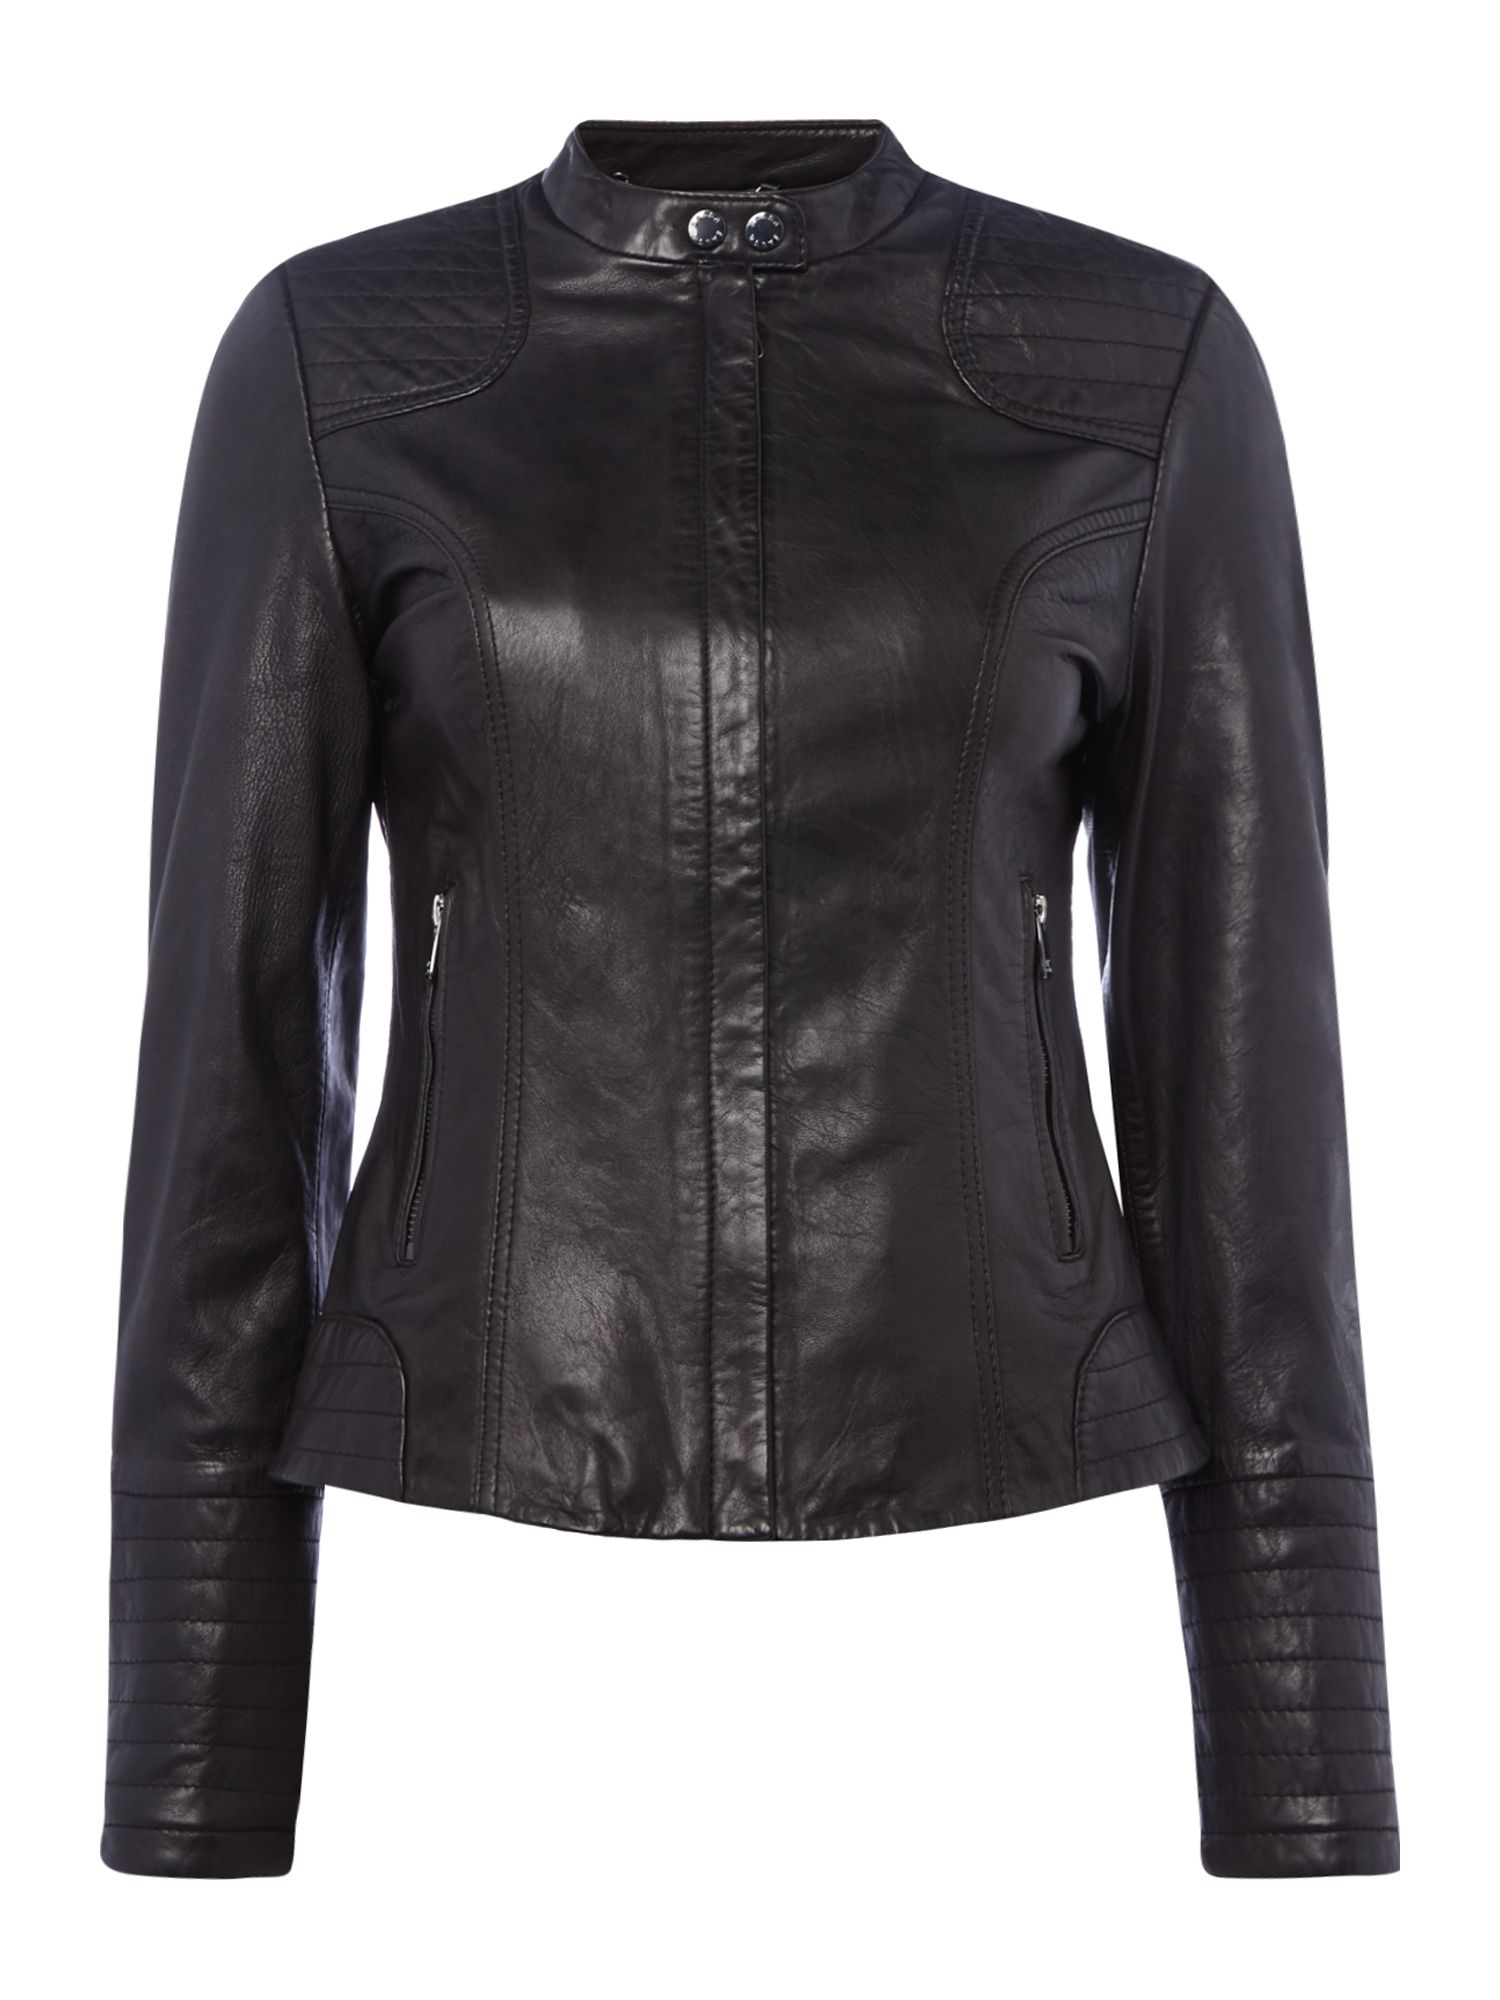 Salsa Leather Jacket in Black, Black